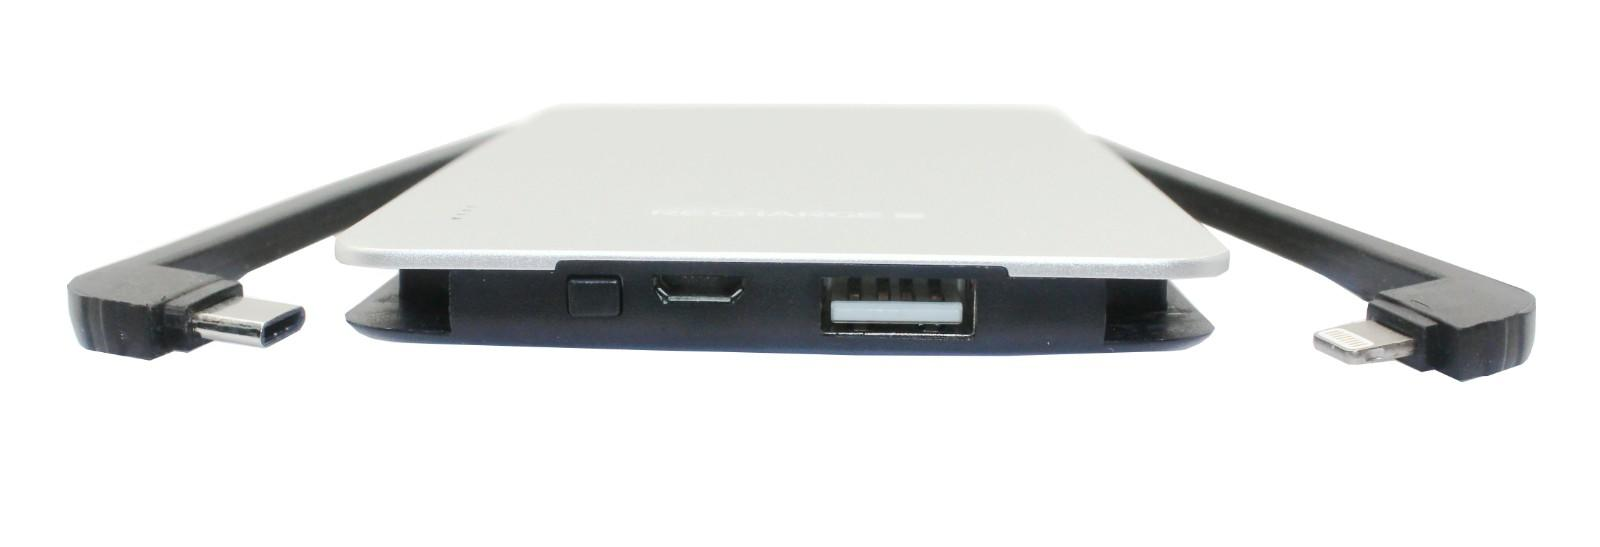 Connectica excellent power bank 13000mah with pd and qc for abc and pc flame retardant-2